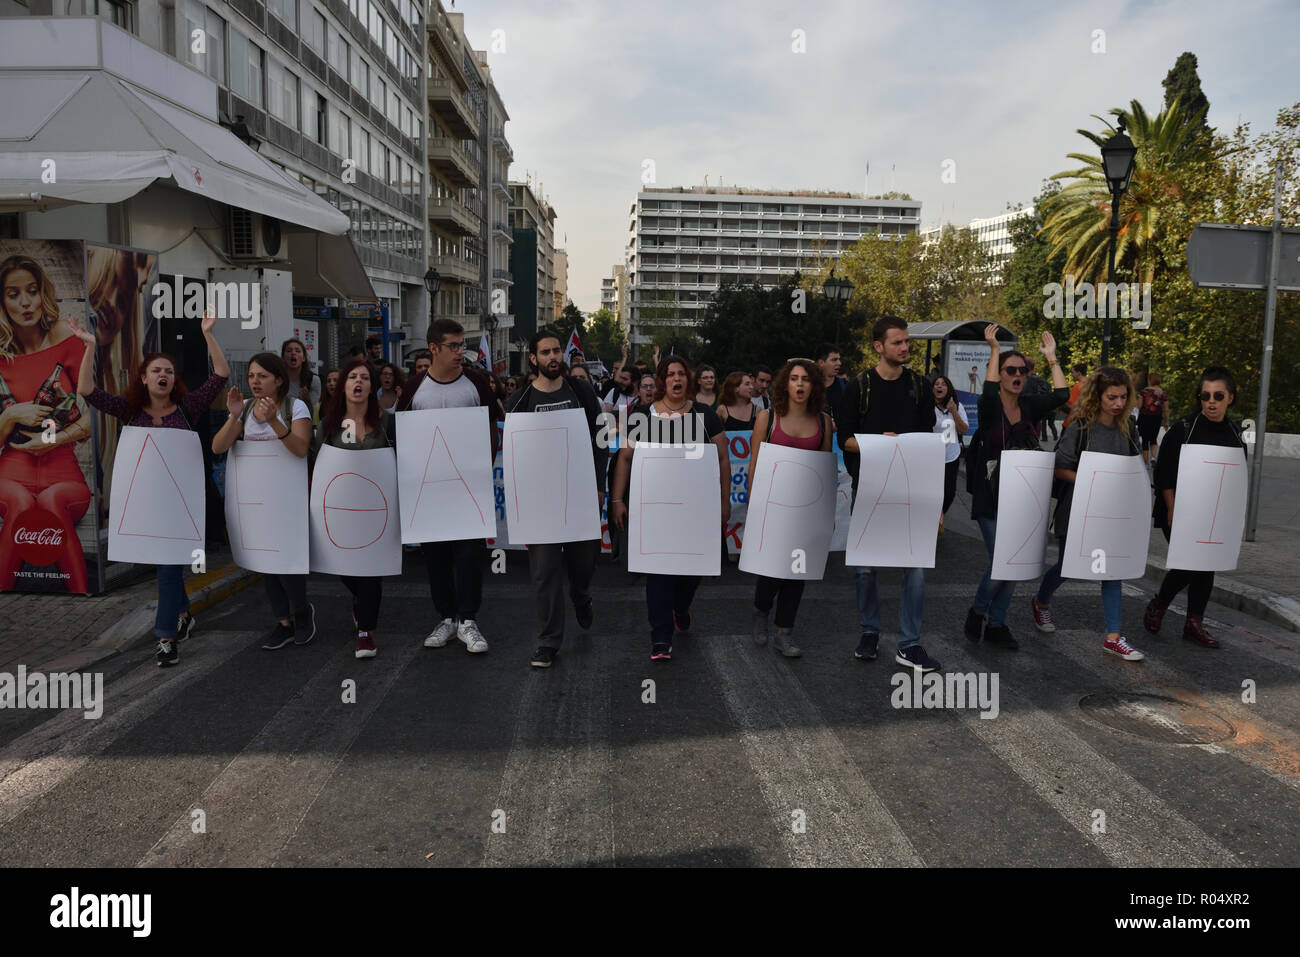 Athens, Greece. 1st Nov 2018.  Students protest against reforms in the education system in Athens, Greece. Credit: Nicolas Koutsokostas/Alamy Live News. - Stock Image